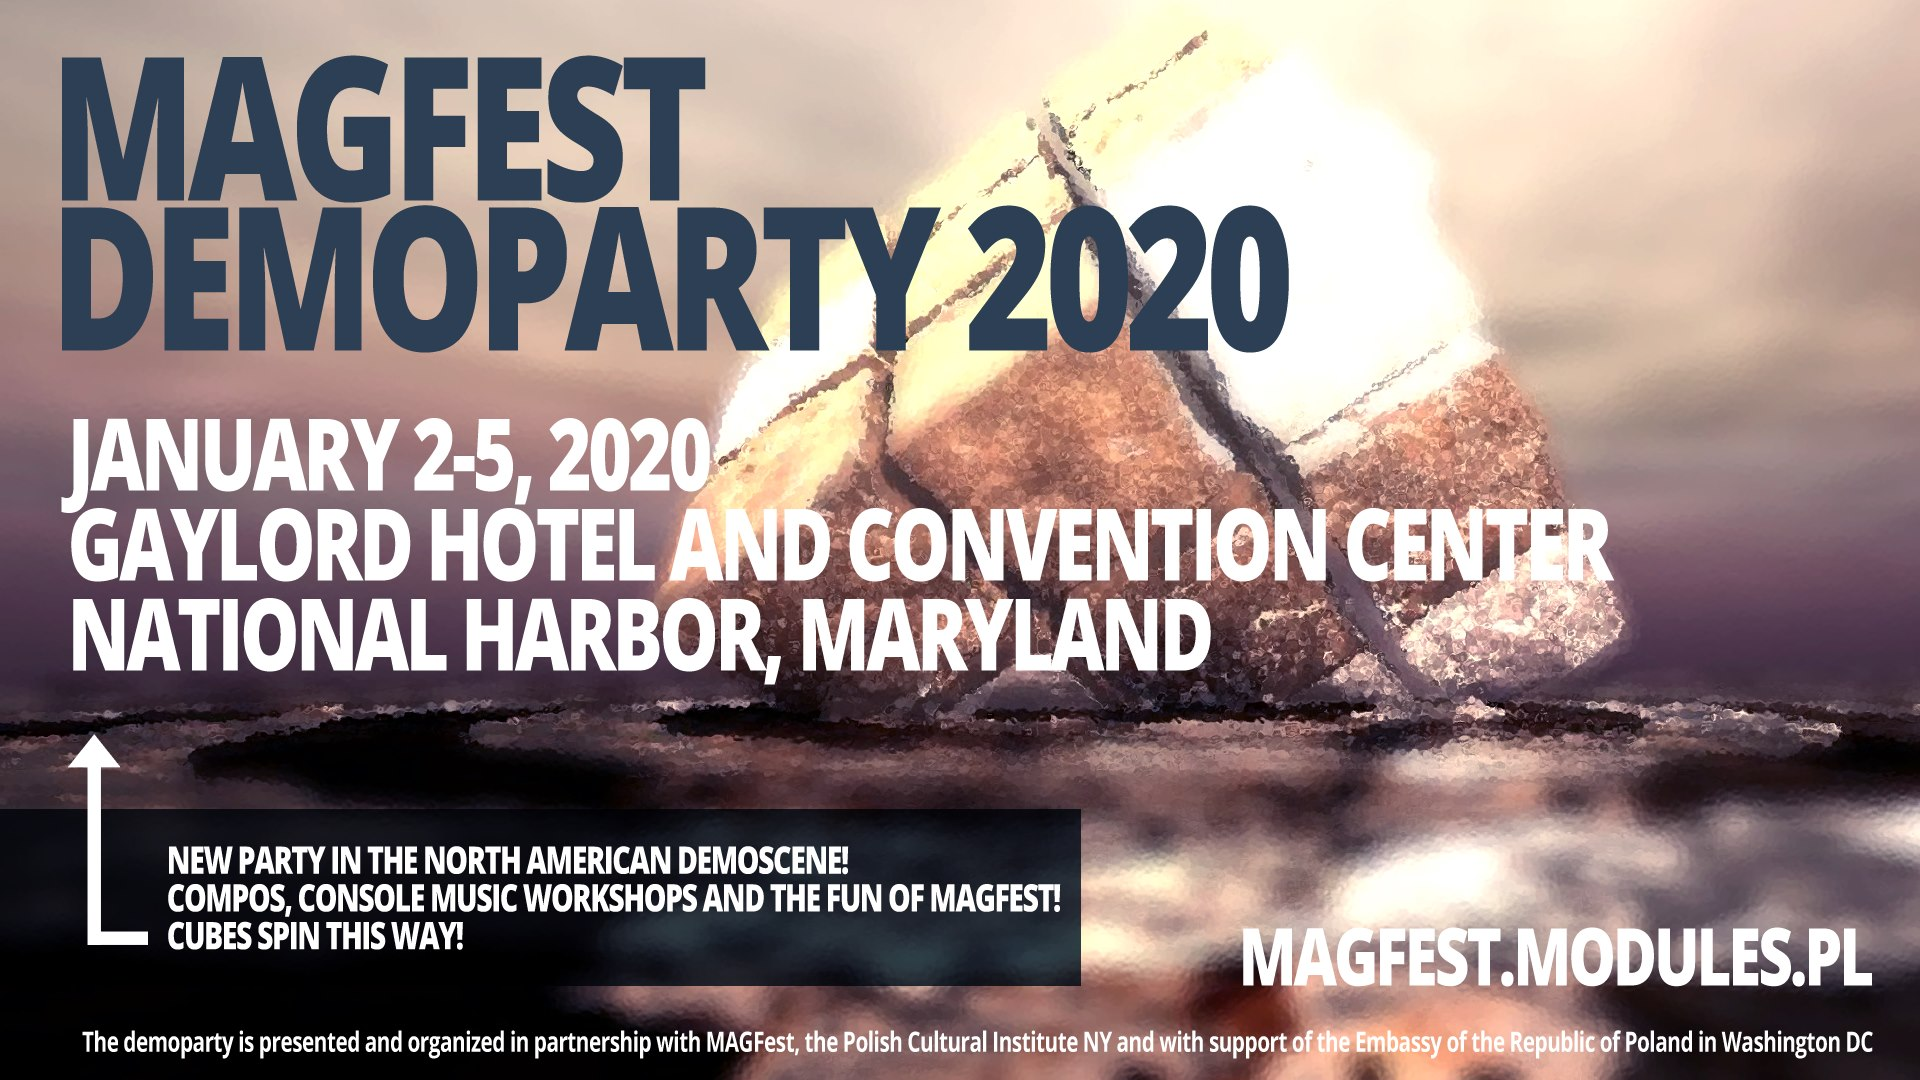 MAGFest Demoparty 2020, Led by Polish Demoscene Gurus, in National Harbor, MD